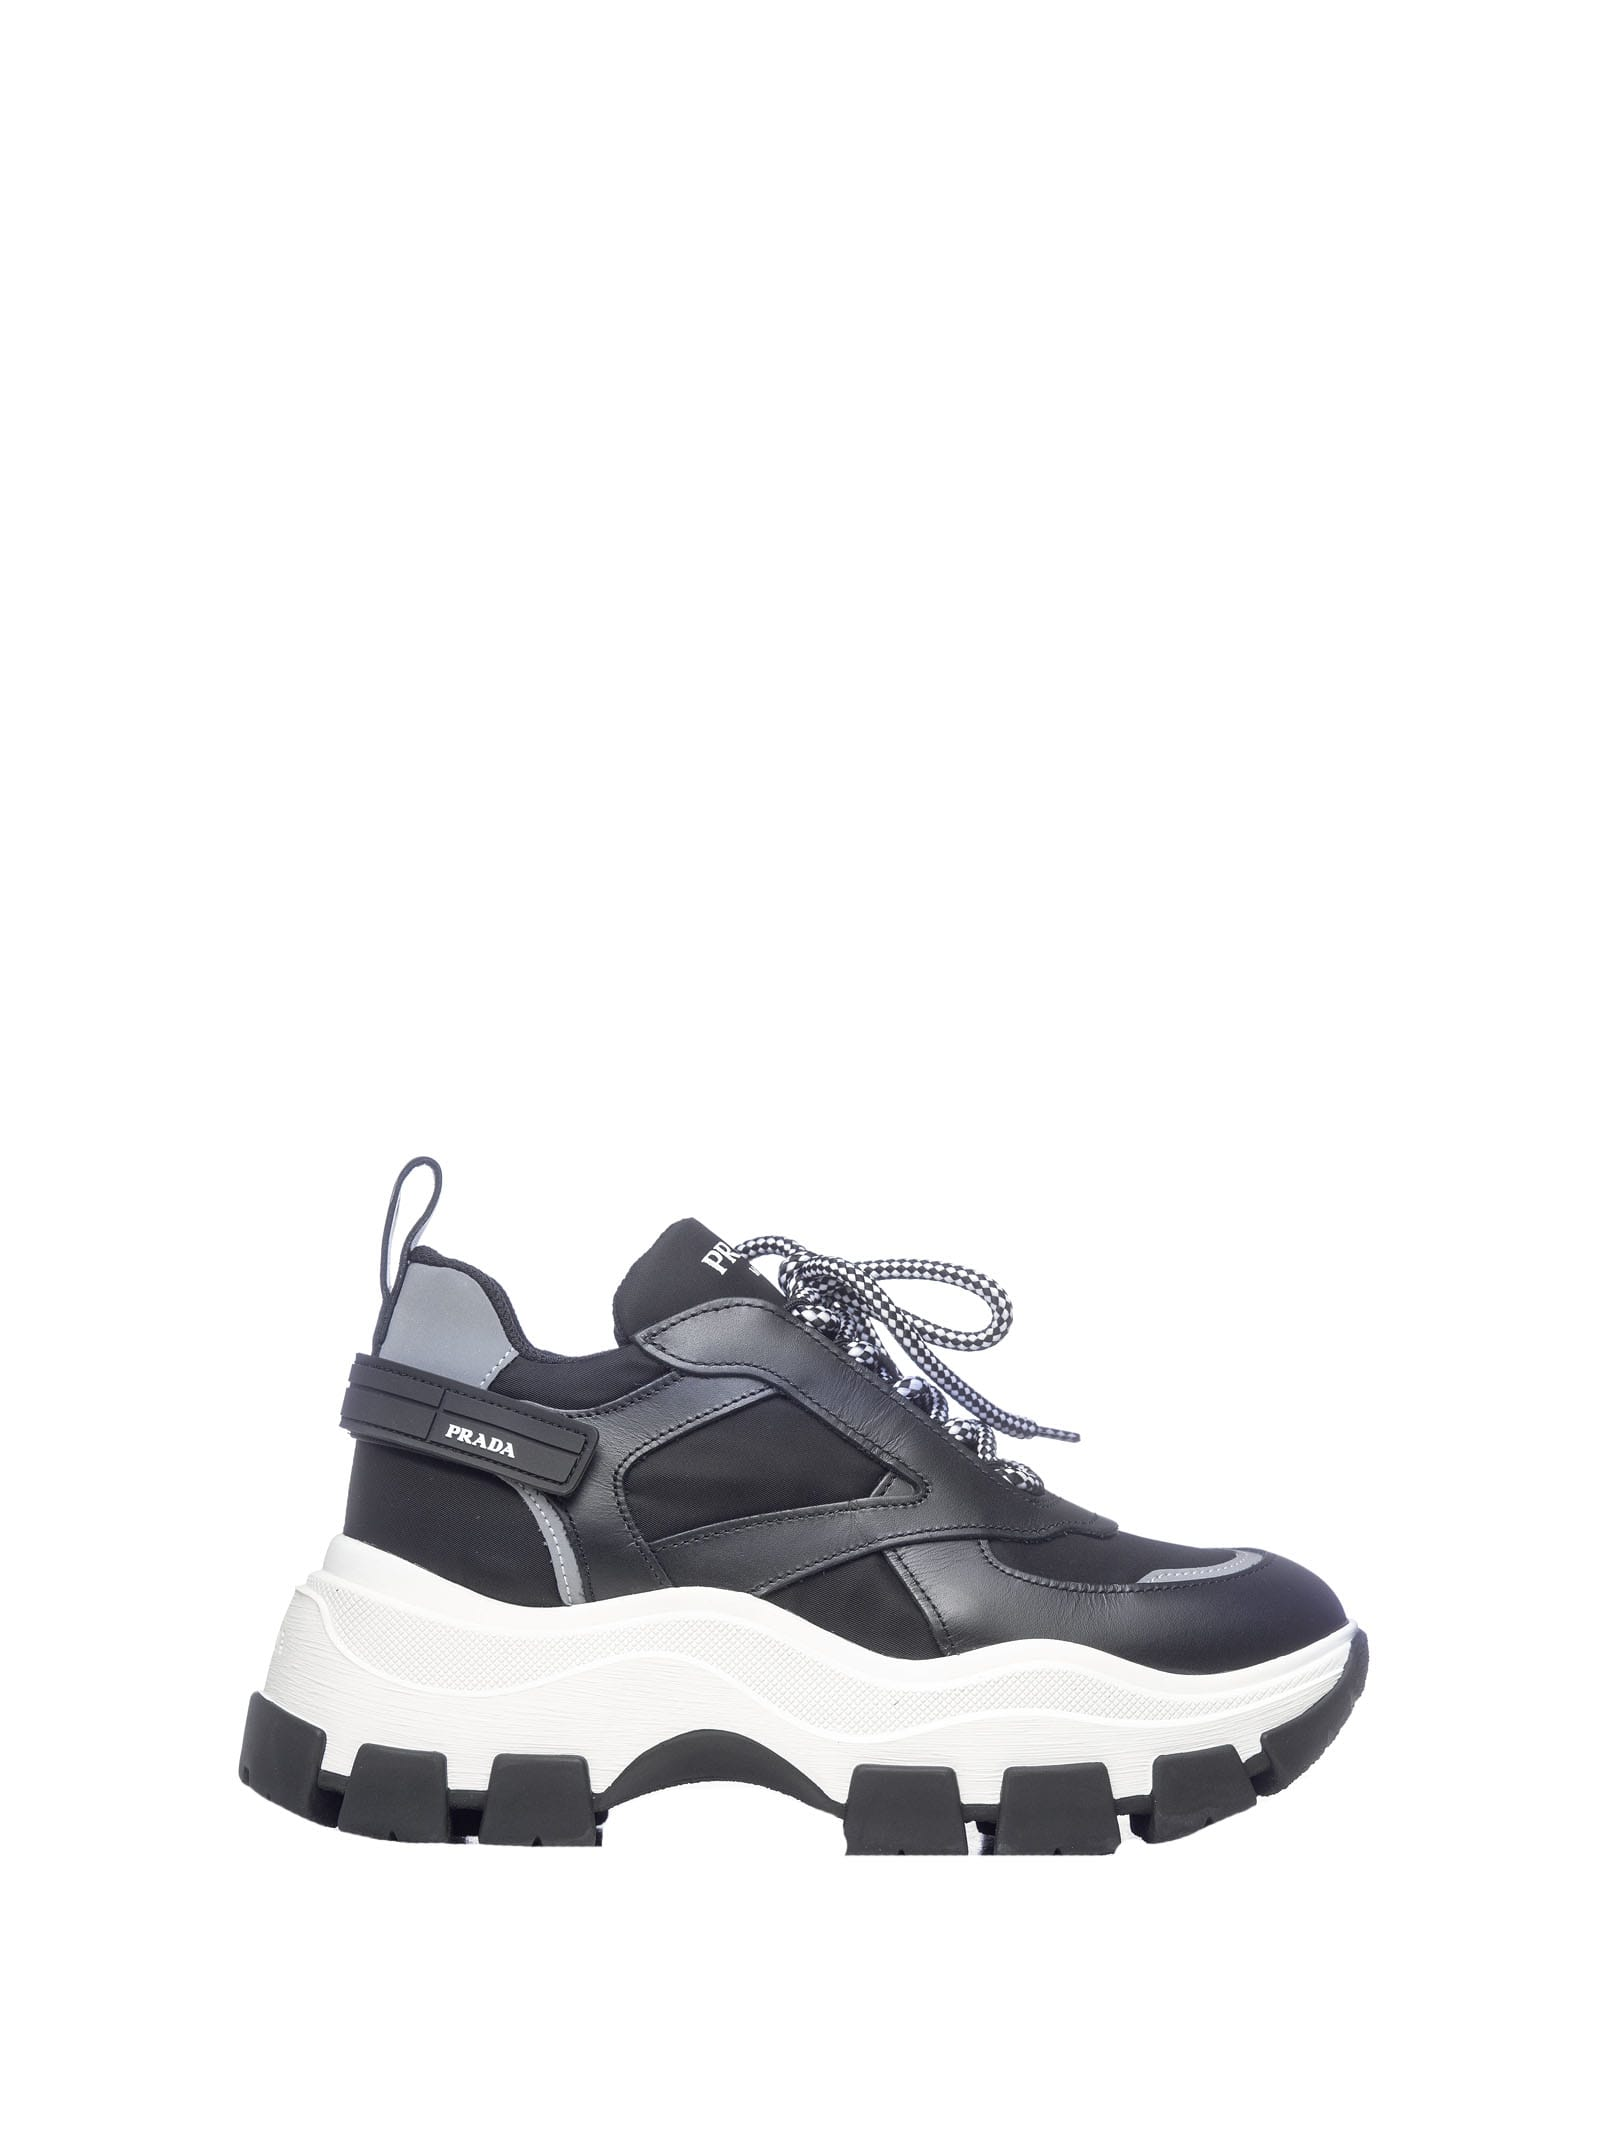 low priced 9045a 38bea Best price on the market at italist | Prada Prada Prada Chuncky Sole  Sneakers